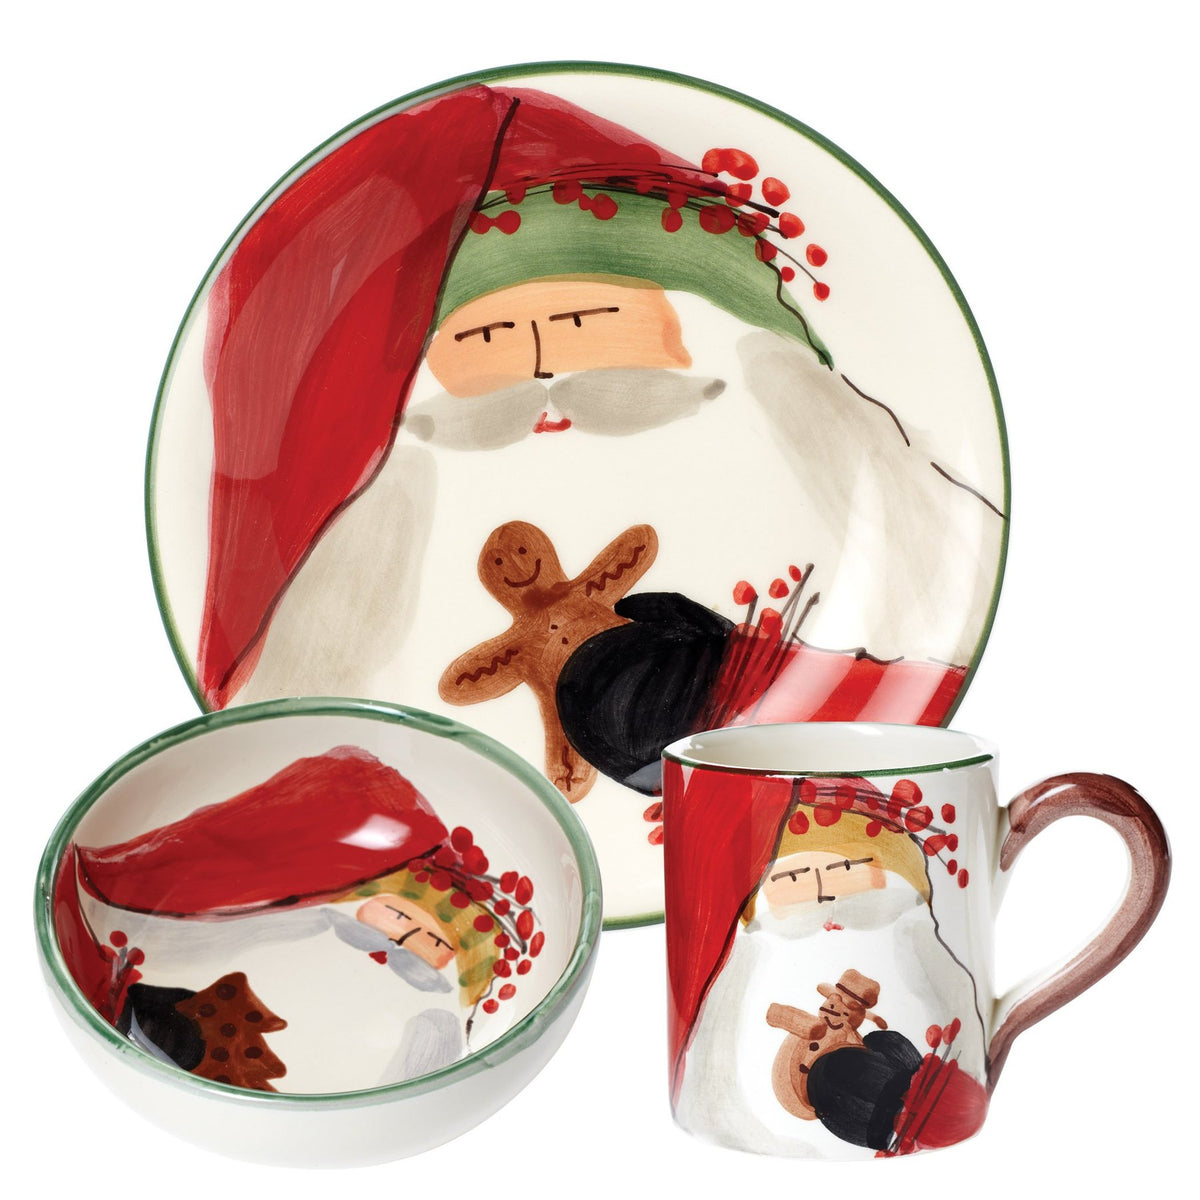 Vietri - Old St. Nick Bambini Dining Set (3 pieces)